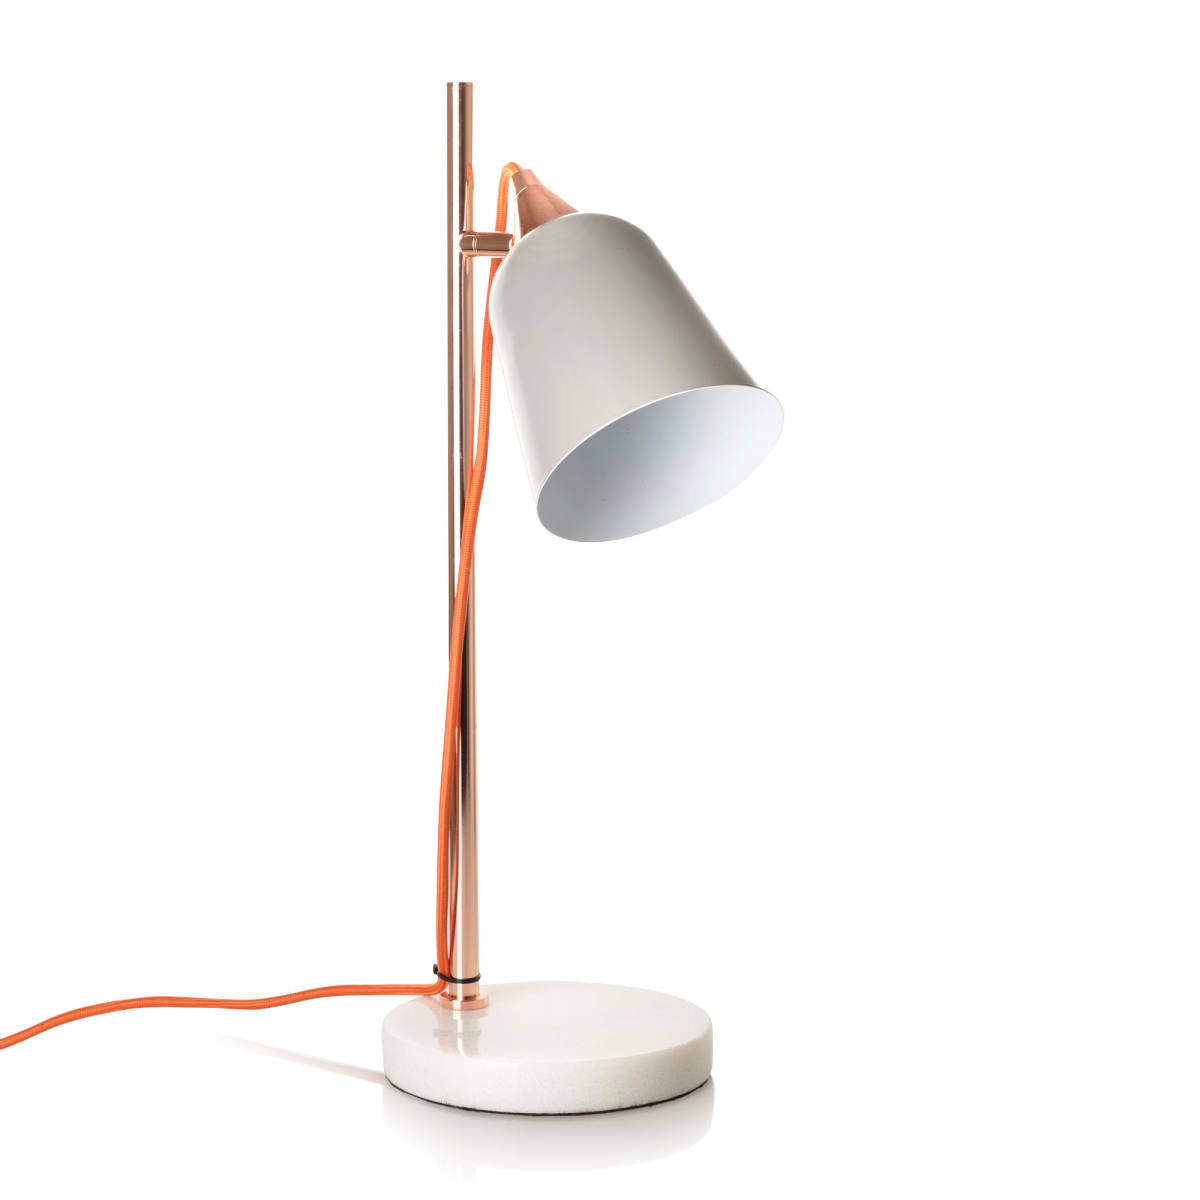 1024654_oliver-bonas_homeware_grey-table-lamp-with-marble-base